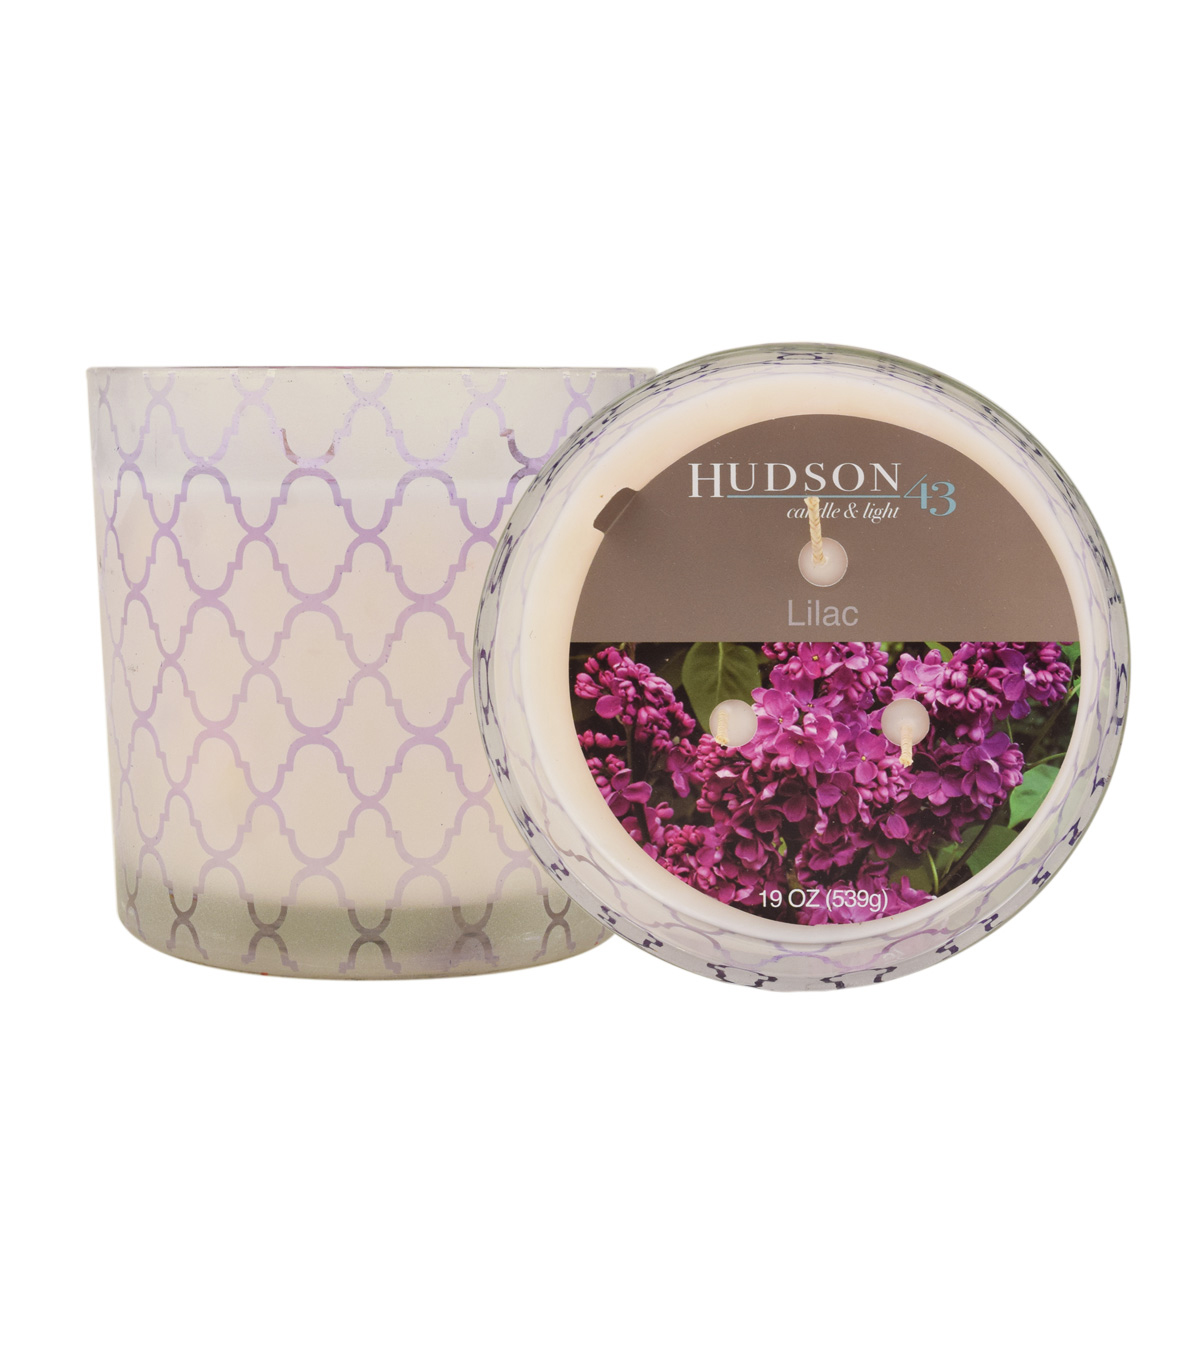 Hudson 43 Candle & Light Collection 19oz Patterned Glass Jar Lilac